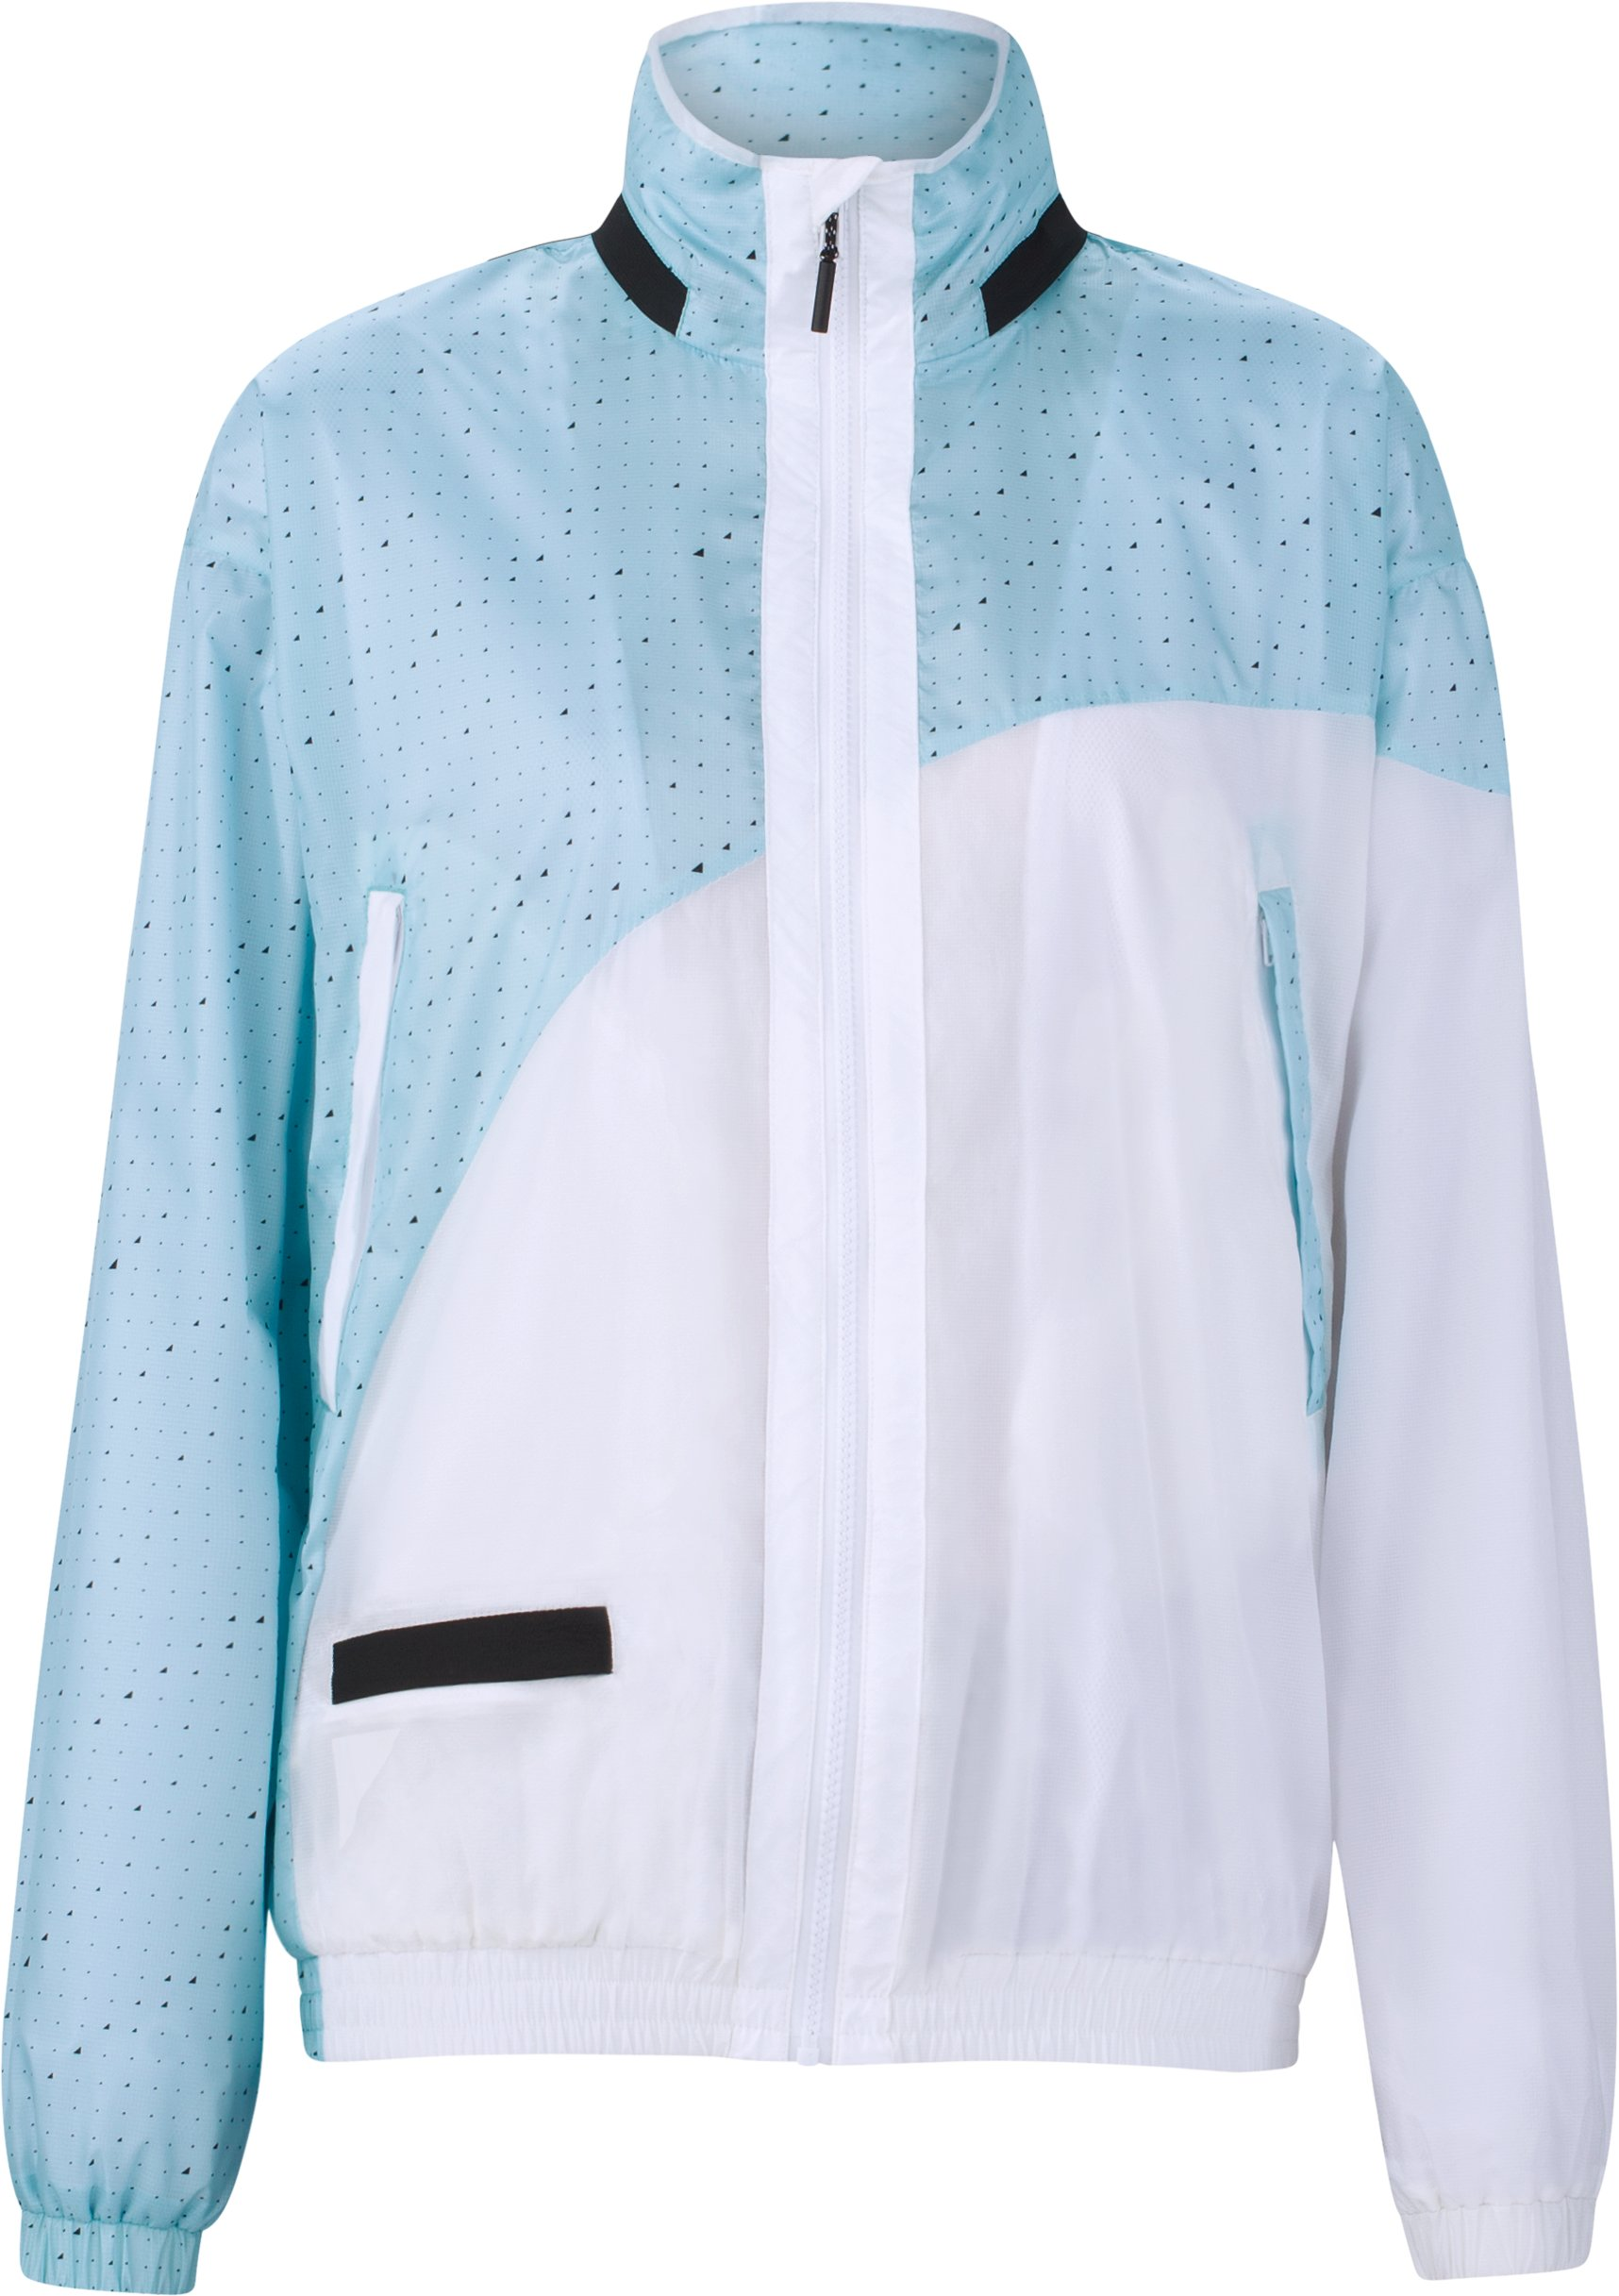 UAS Relay Pattern Track Jacket, BABY BLUE, undefined